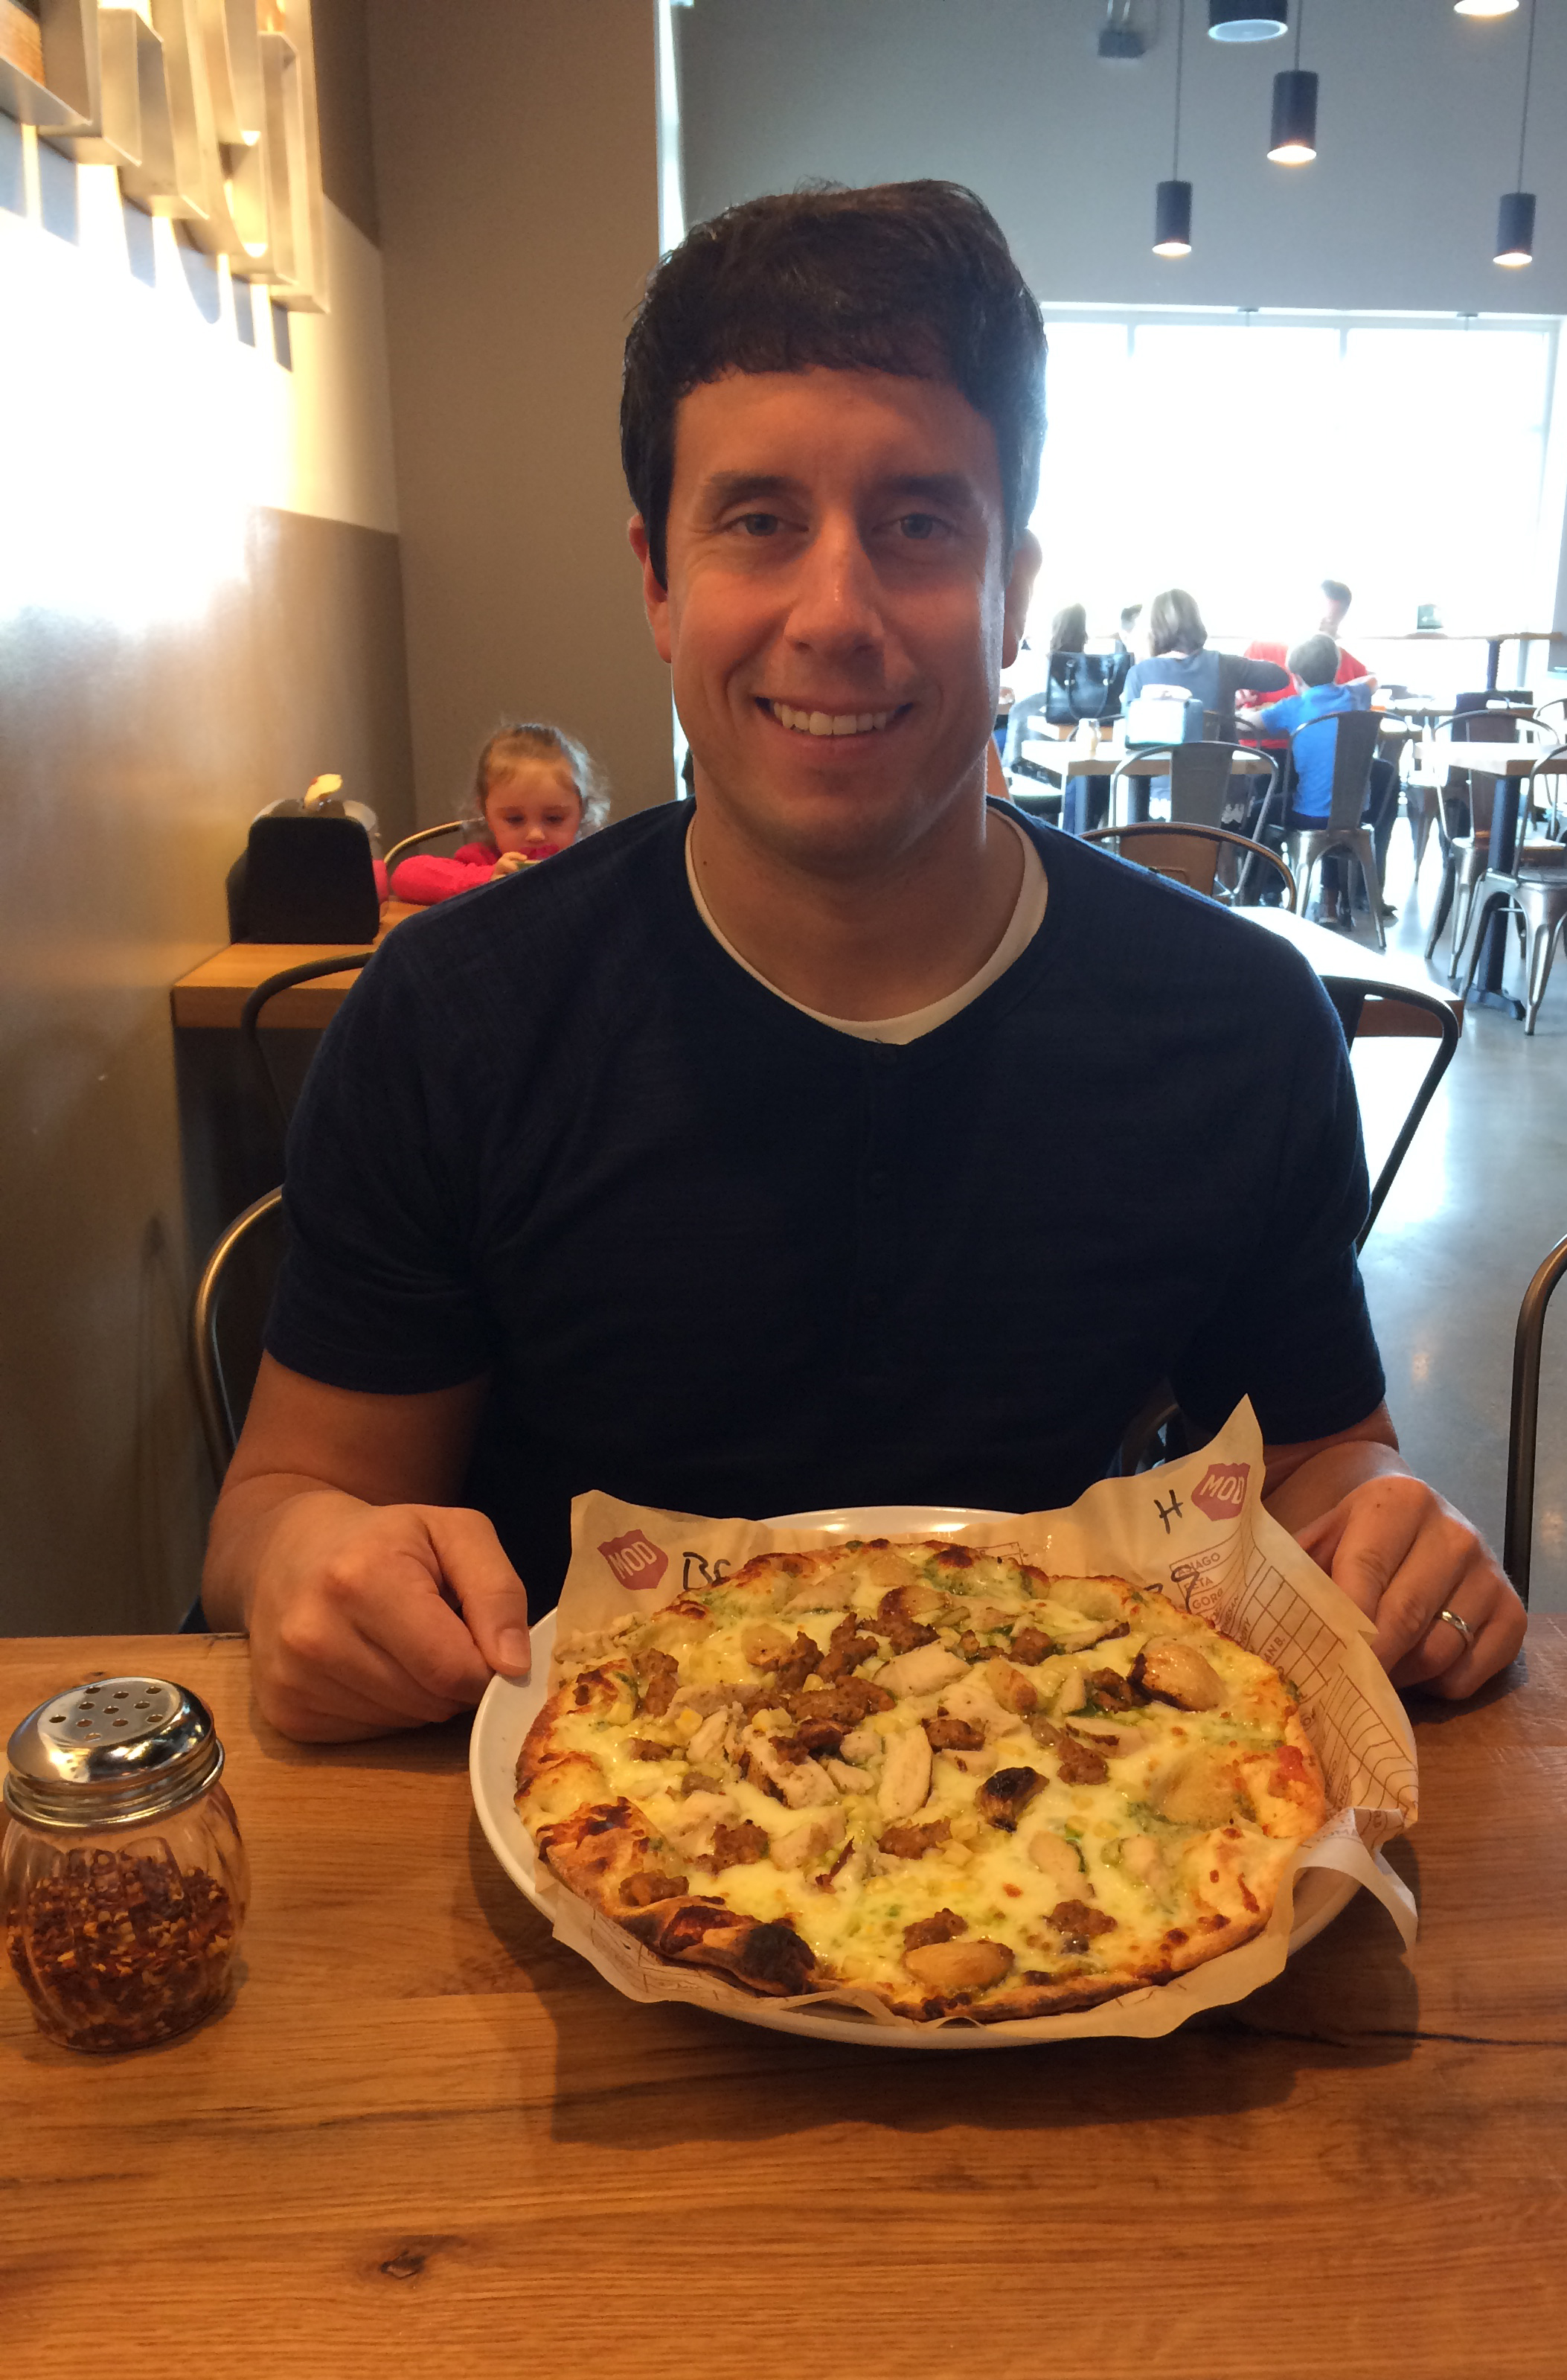 A photo of me with the pizza that I built from scratch. I really enjoyed MOD Pizza.